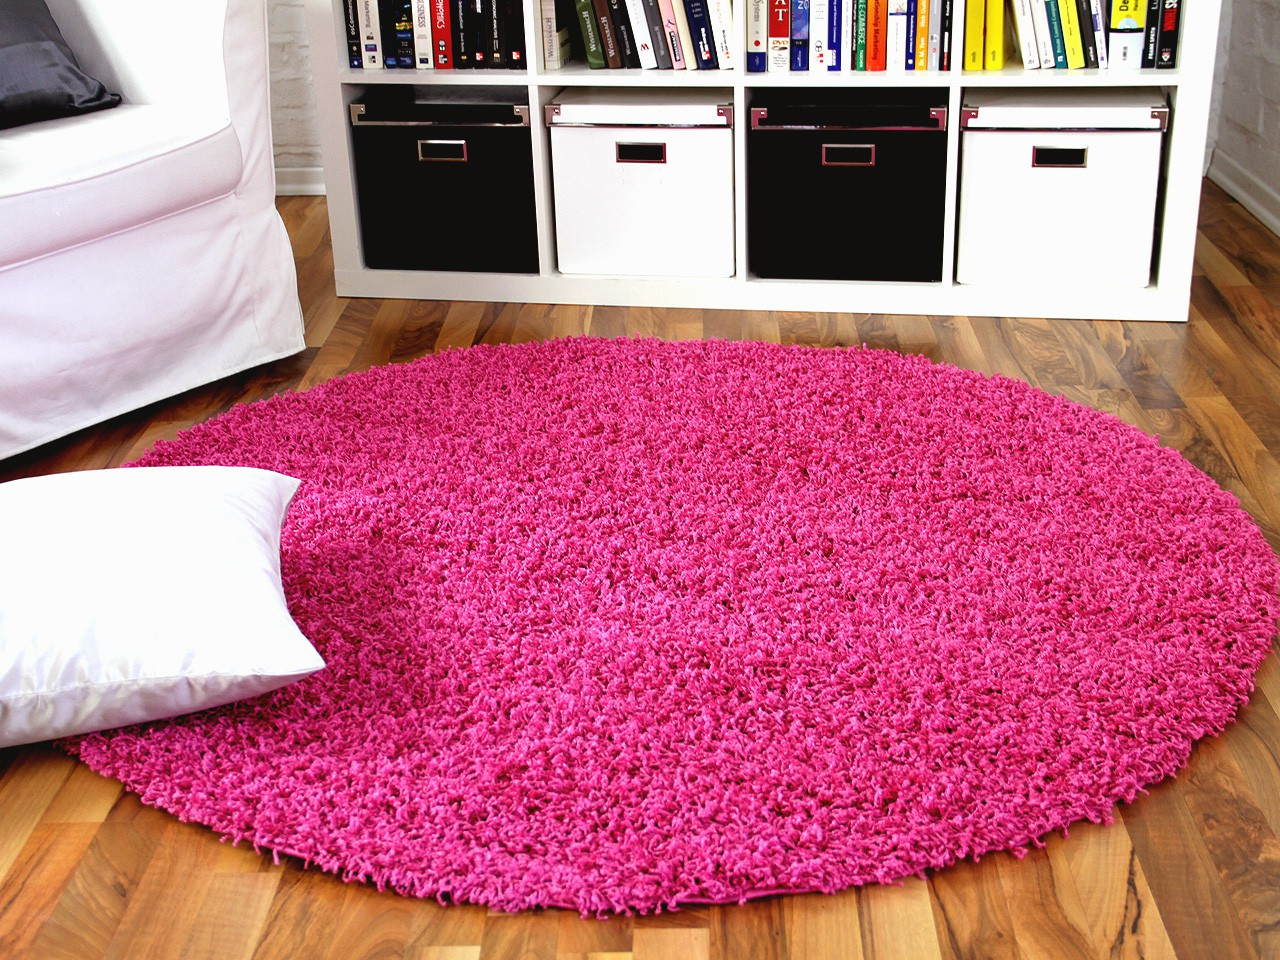 hochflor langflor shaggy teppich aloha pink rund teppiche hochflor langflor teppiche pink lila. Black Bedroom Furniture Sets. Home Design Ideas